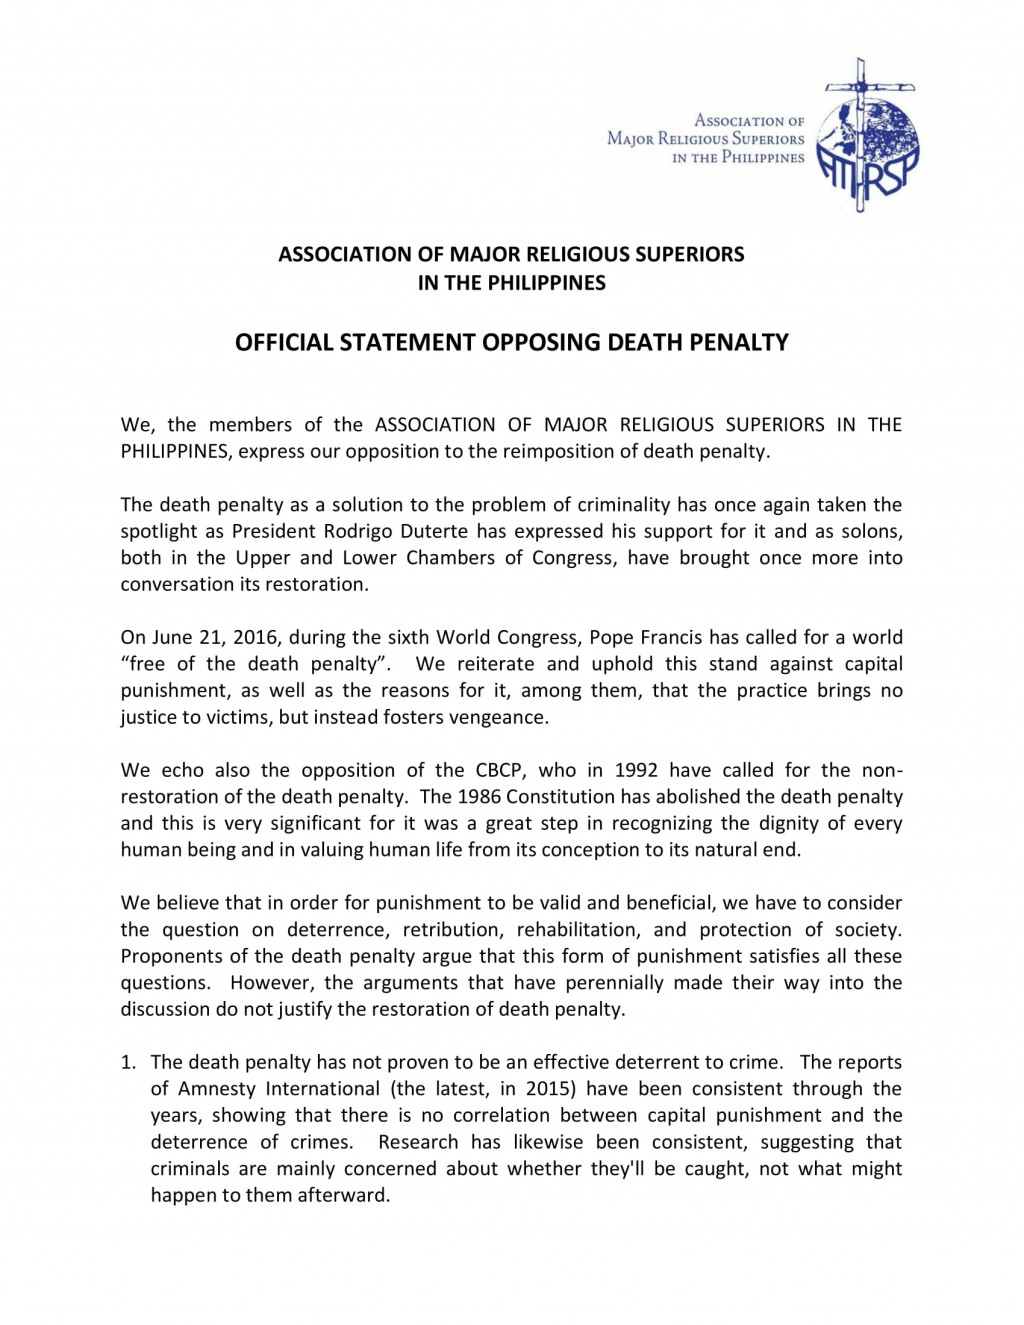 015 Amrsp Message Statement Against Death Penalty Essay On Beautiful Should Be Abolished Or Not In Hindi Large